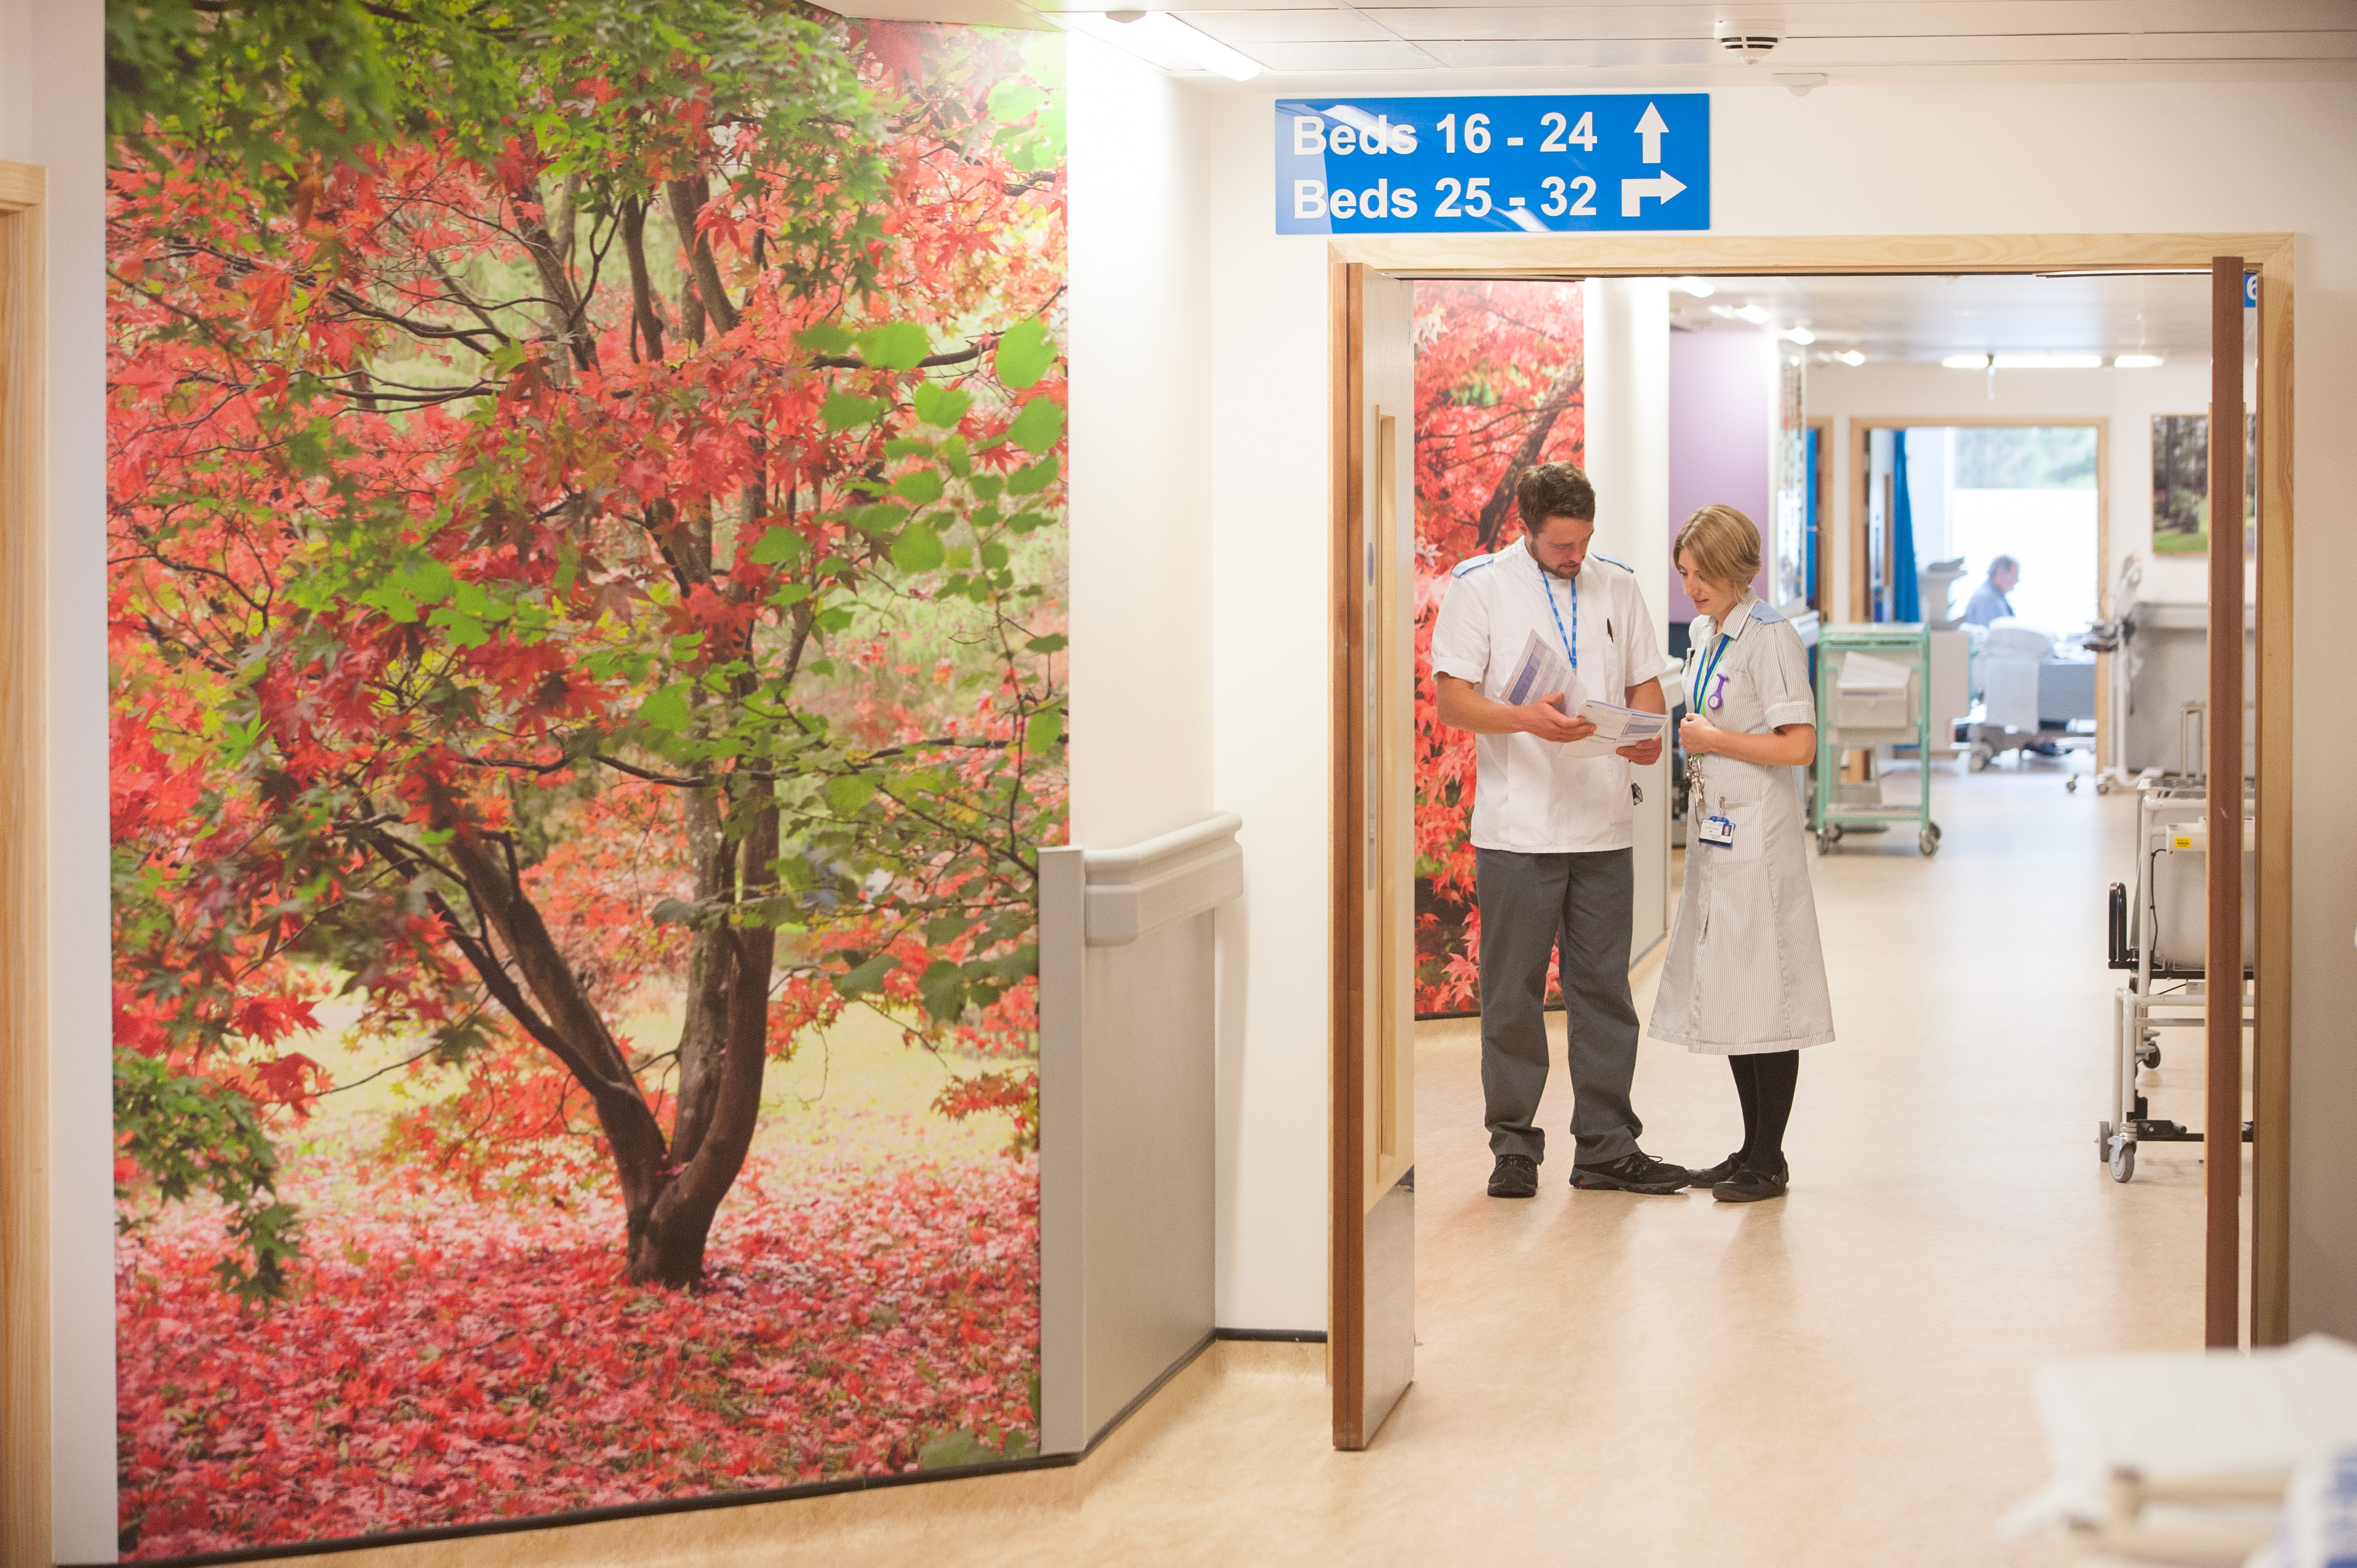 wall vinyl by Simon Roberts for Bristol Royal Infirmary. Photo by Clint Randall